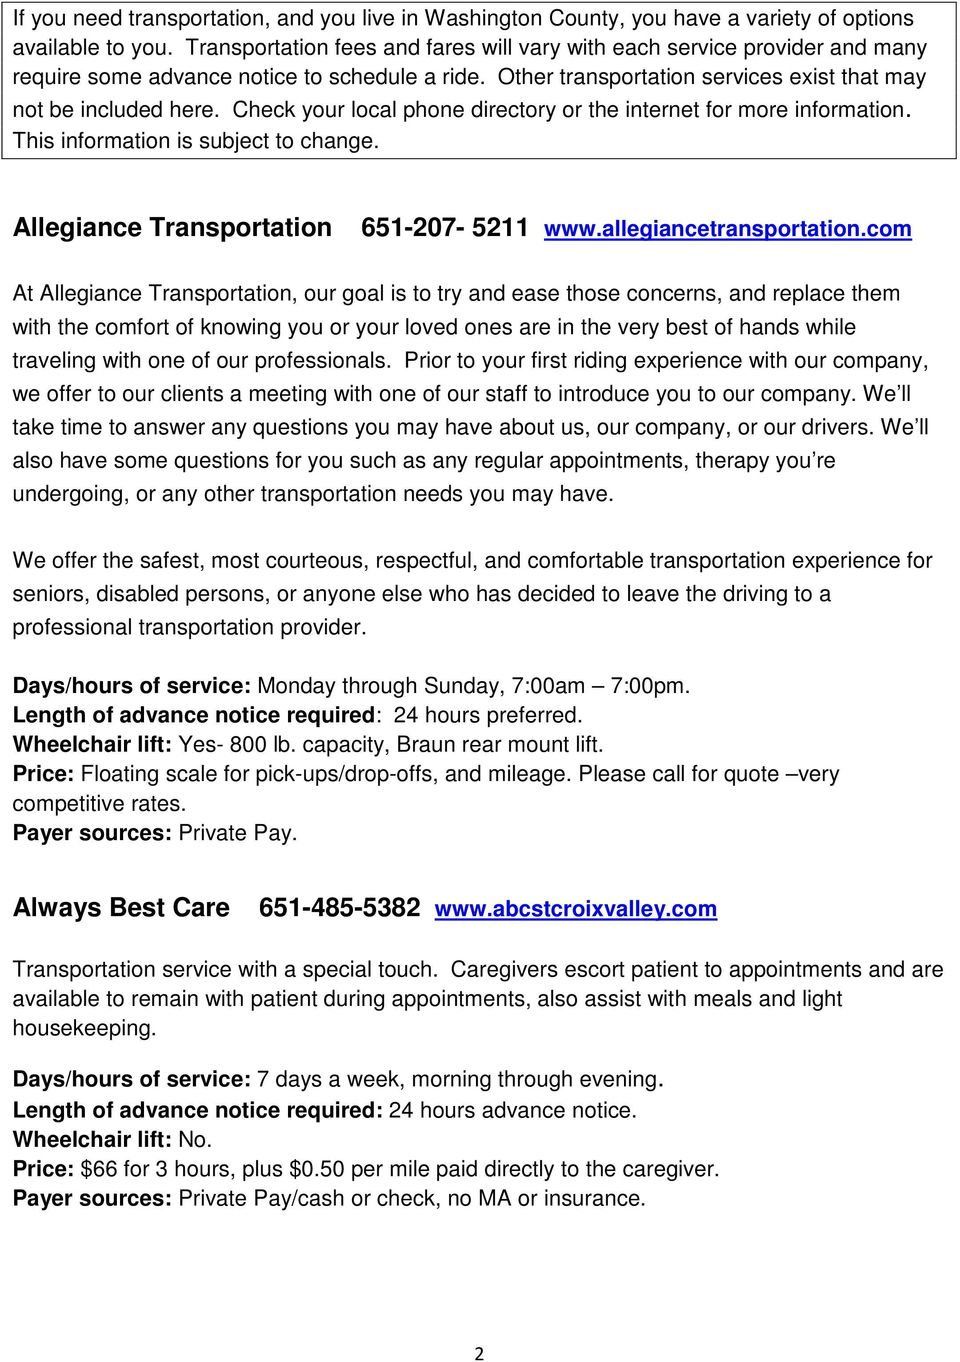 Check your local phone directory or the internet for more information. This information is subject to change. Allegiance Transportation 651-207- 5211 www.allegiancetransportation.